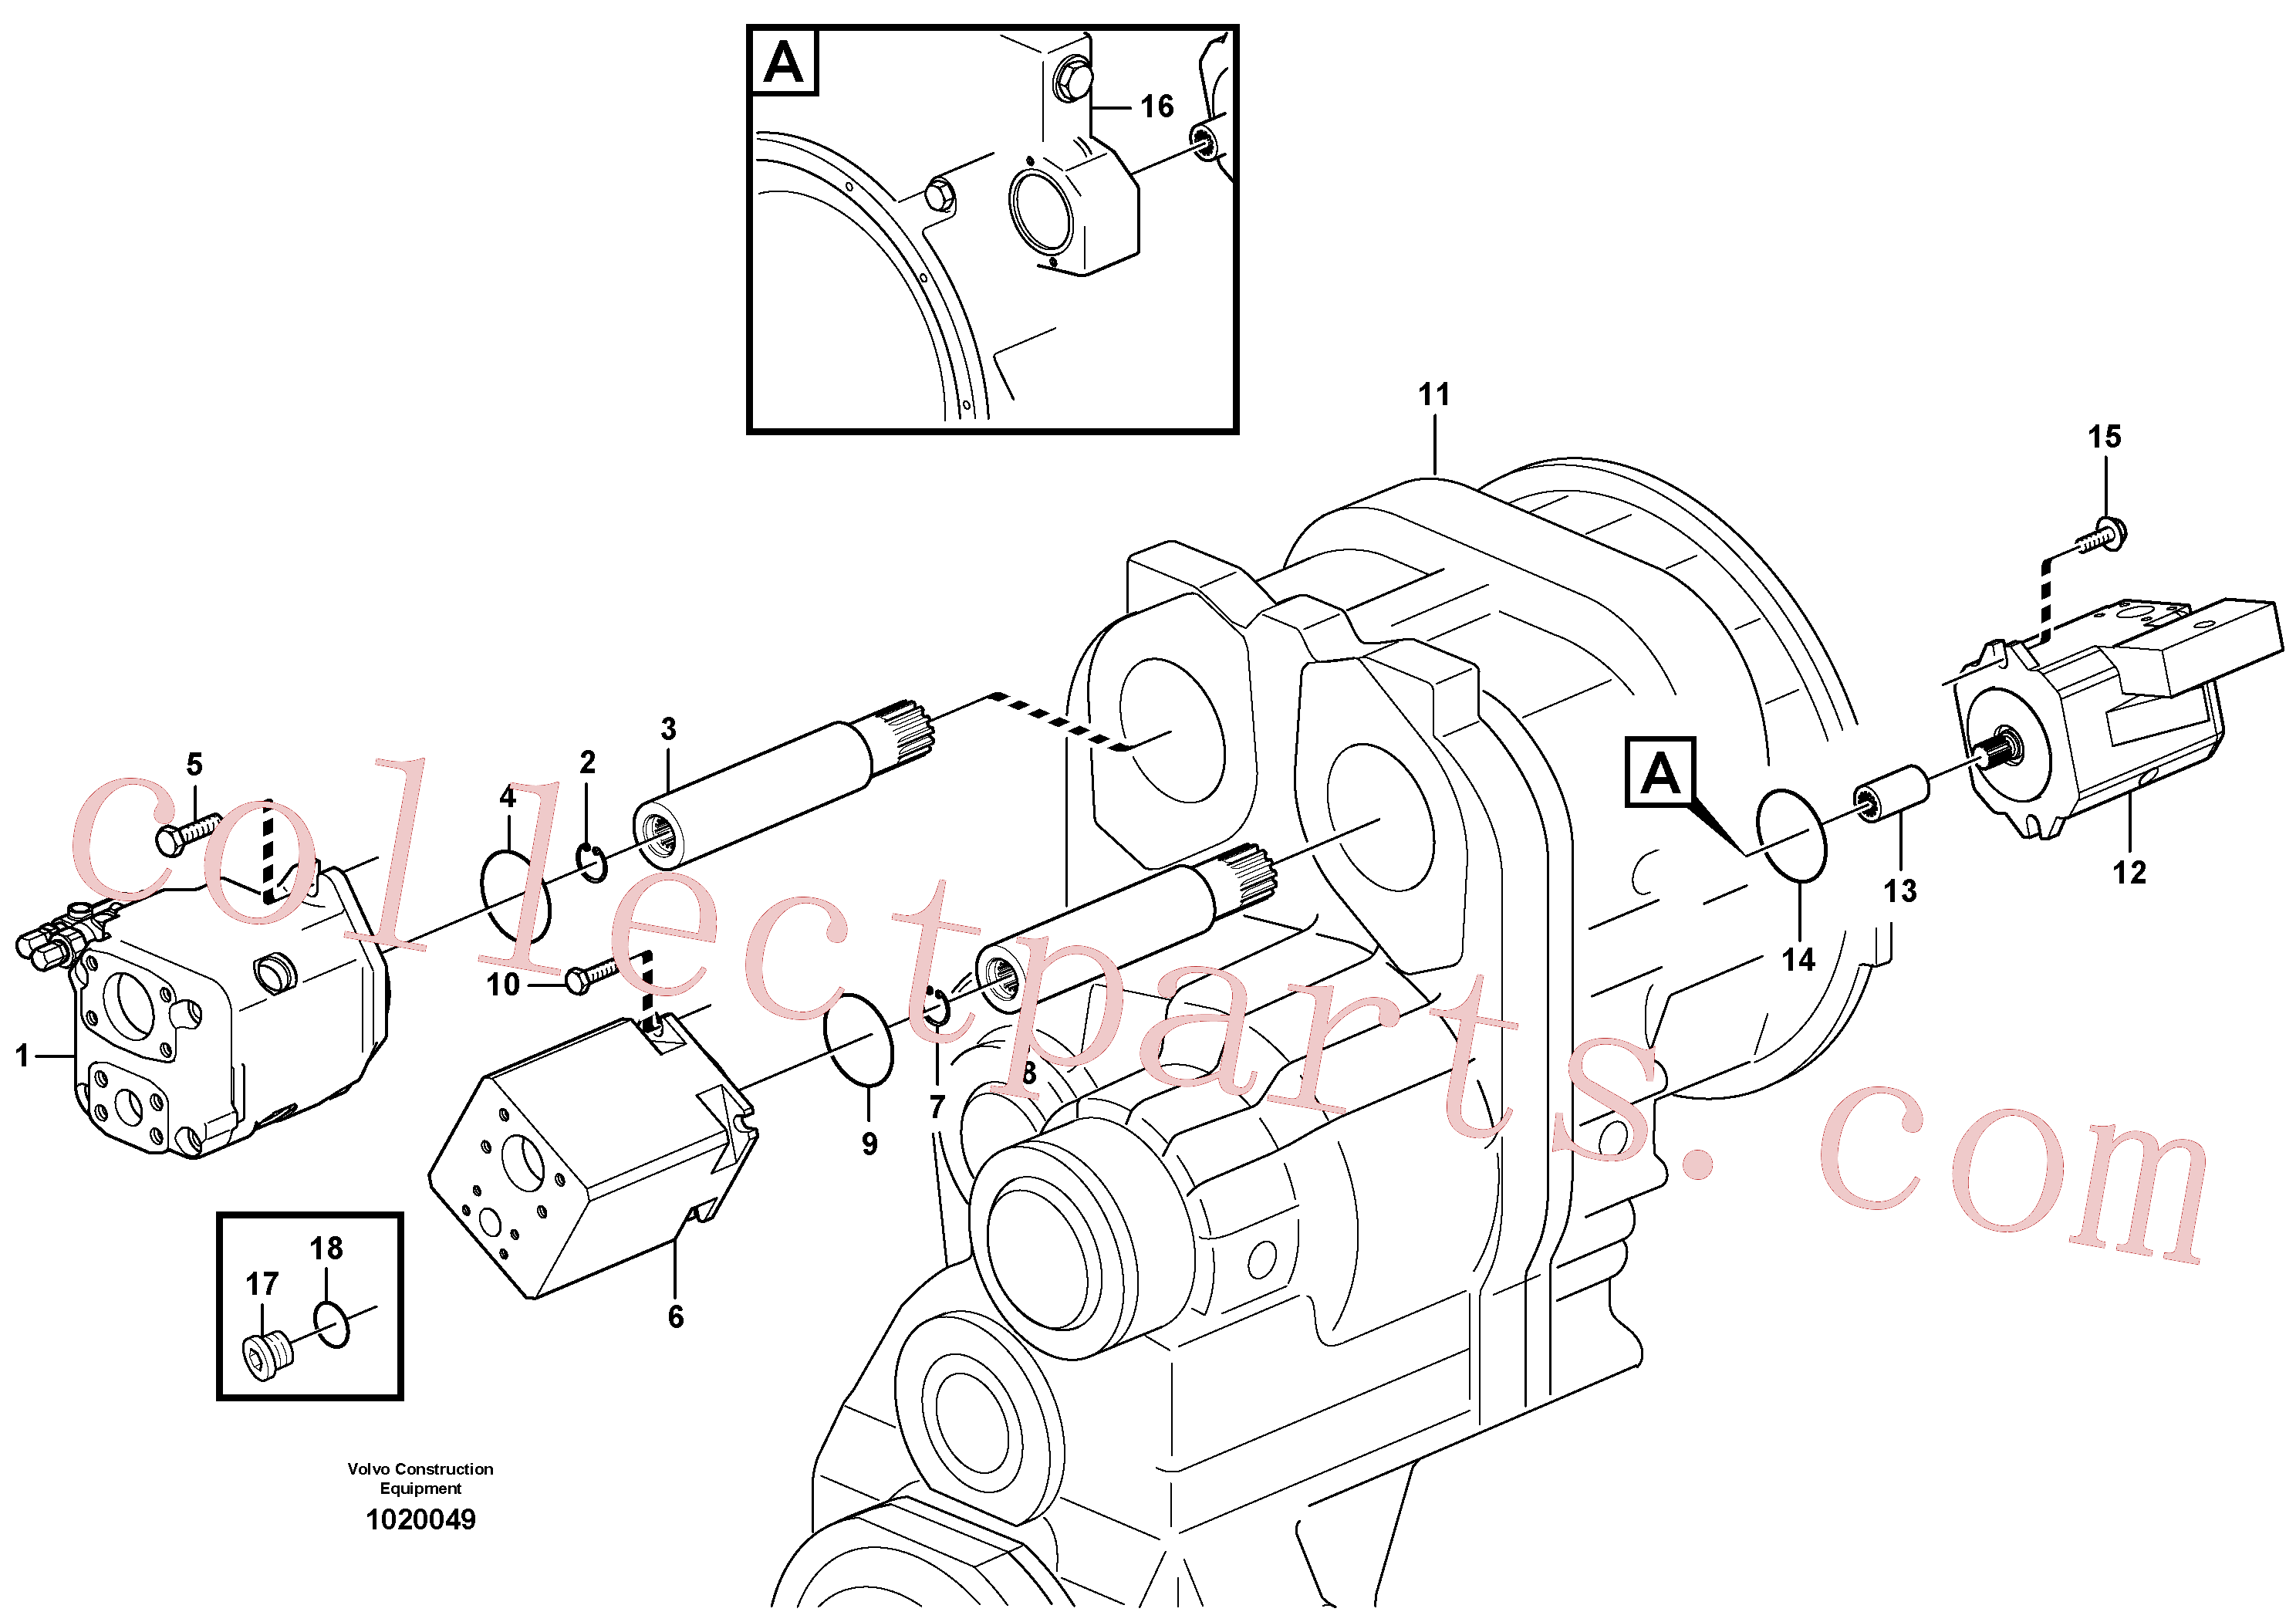 VOE11038380 for Volvo Hydraulic pump with fitting parts(1020049 assembly)